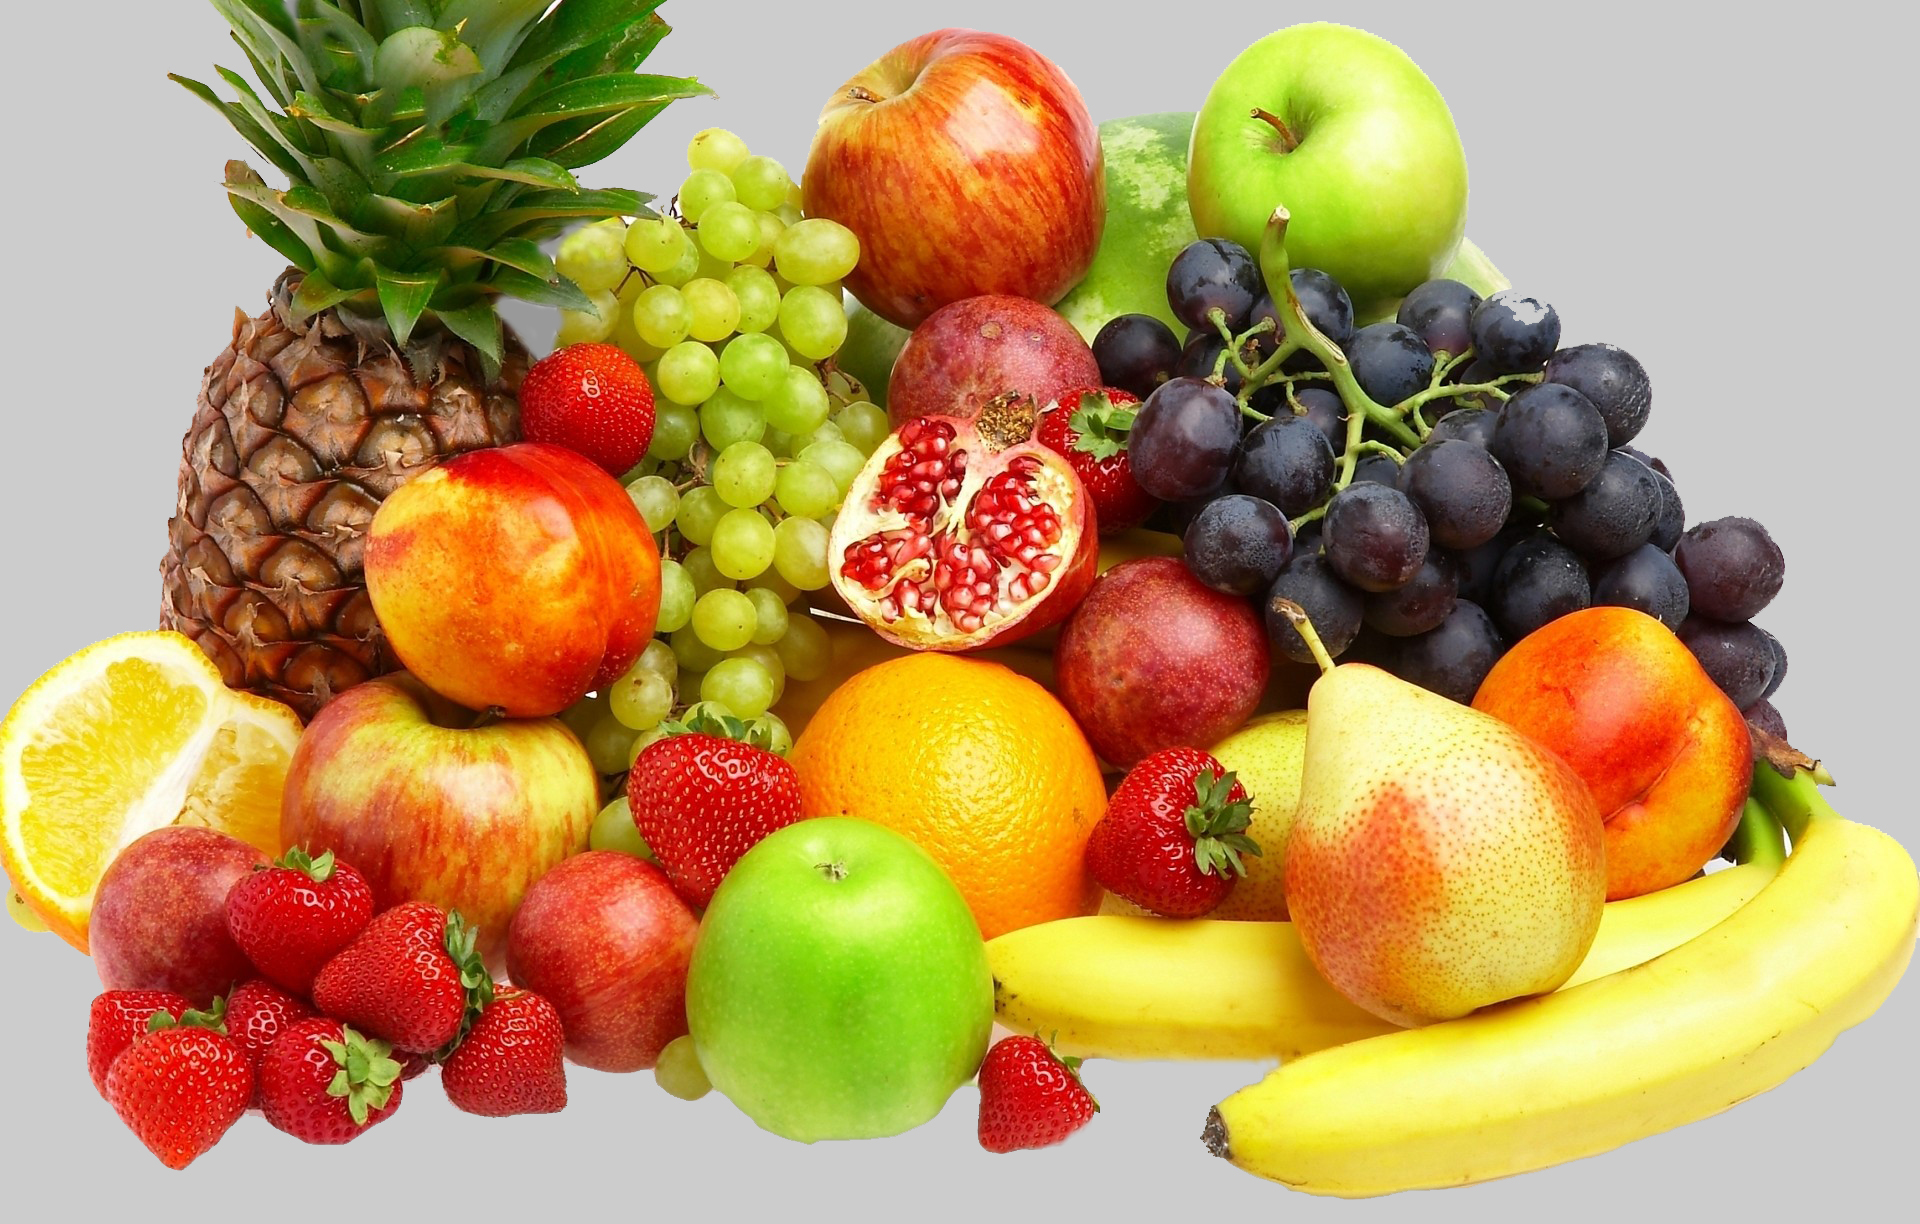 10 kinds of fruits work well for people with weight gain, are want to lose weight safely and effectively.